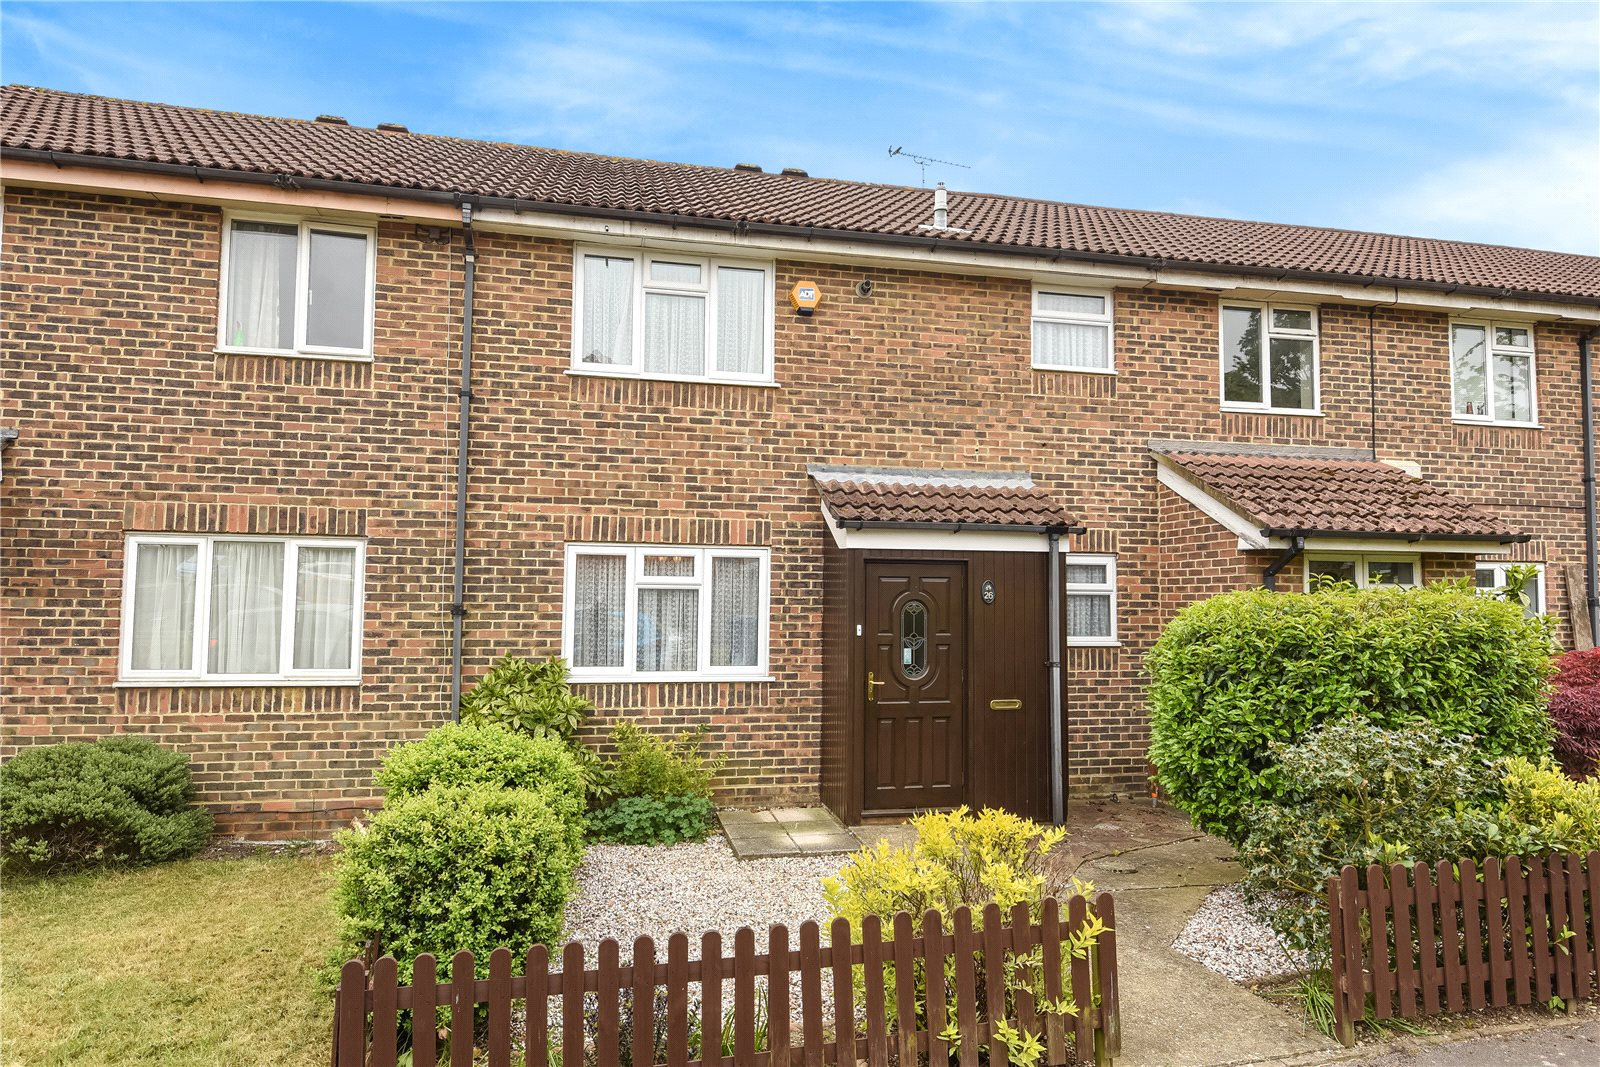 3 Bedrooms Terraced House for sale in Humber Way, Sandhurst, Berkshire, GU47